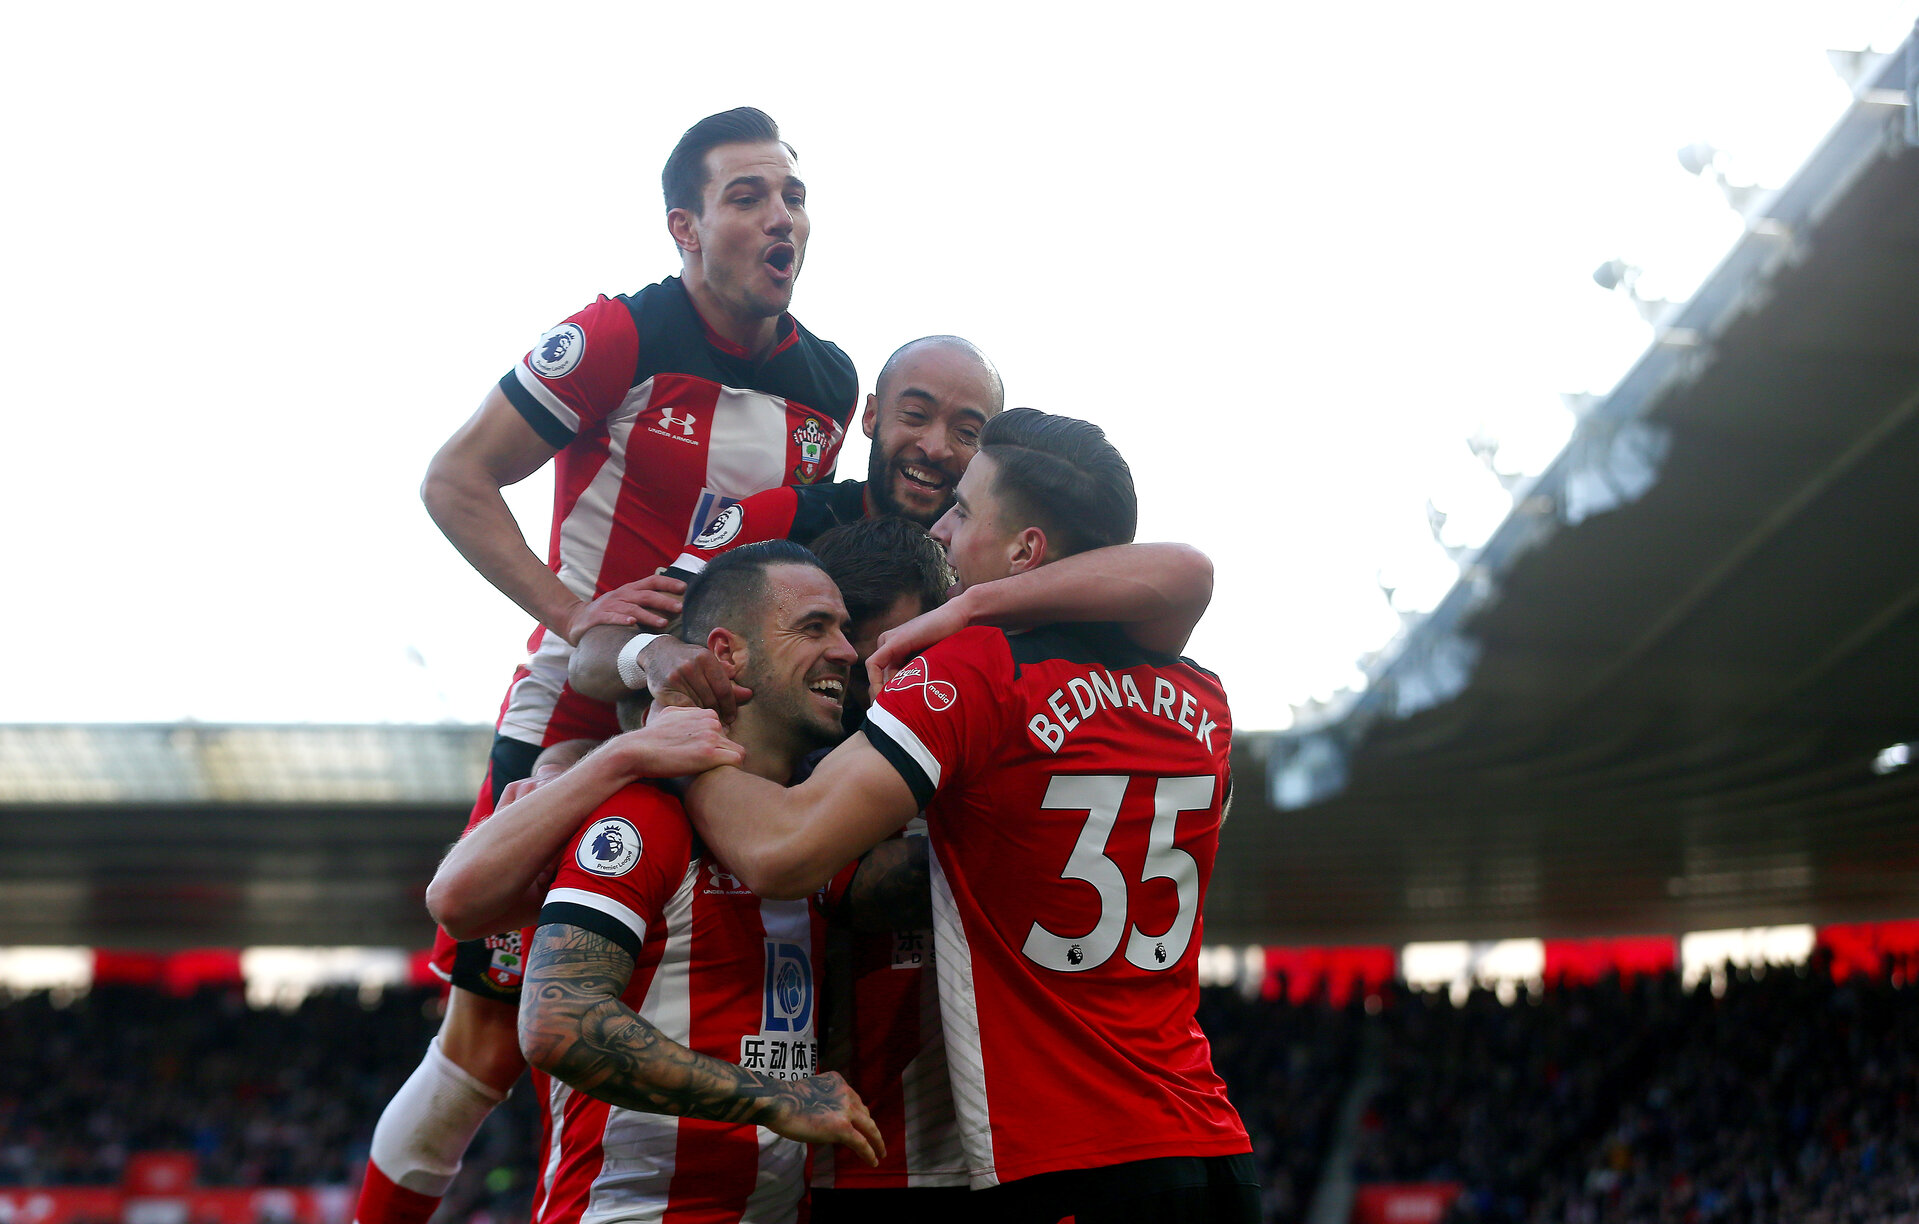 SOUTHAMPTON, ENGLAND - JANUARY 18: Cedric Soares(L) of Southampton joins his team mates as they celebrate Jan Bednarek's(R) goal during the Premier League match between Southampton FC and Wolverhampton Wanderers at St Mary's Stadium on January 18, 2020 in Southampton, United Kingdom. (Photo by Matt Watson/Southampton FC via Getty Images)